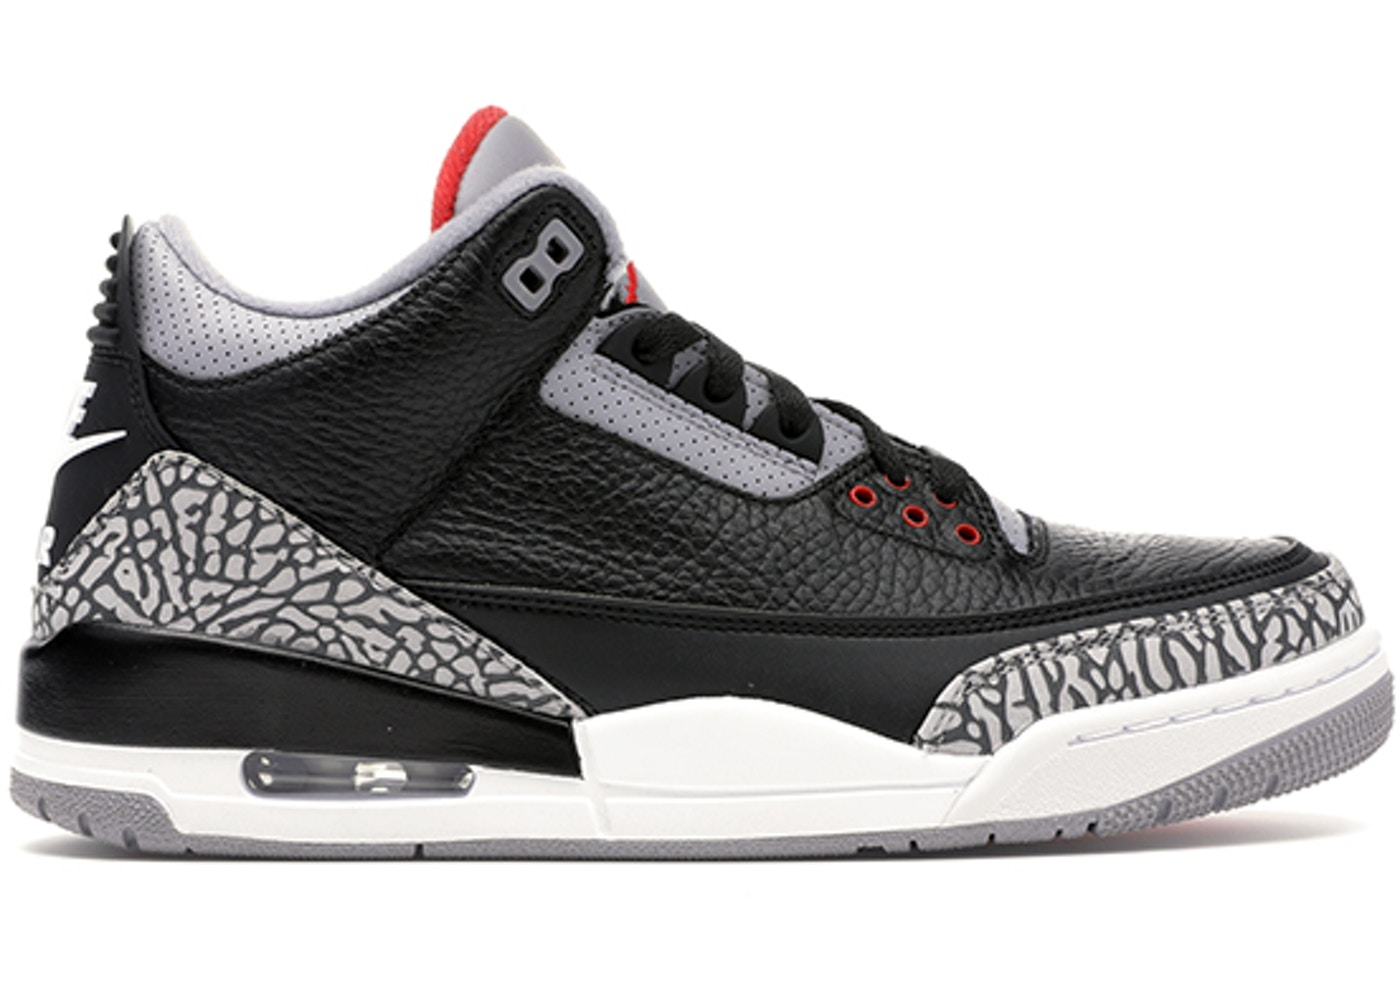 watch 75ccb 592e3 Jordan 3 Retro Black Cement (2018)